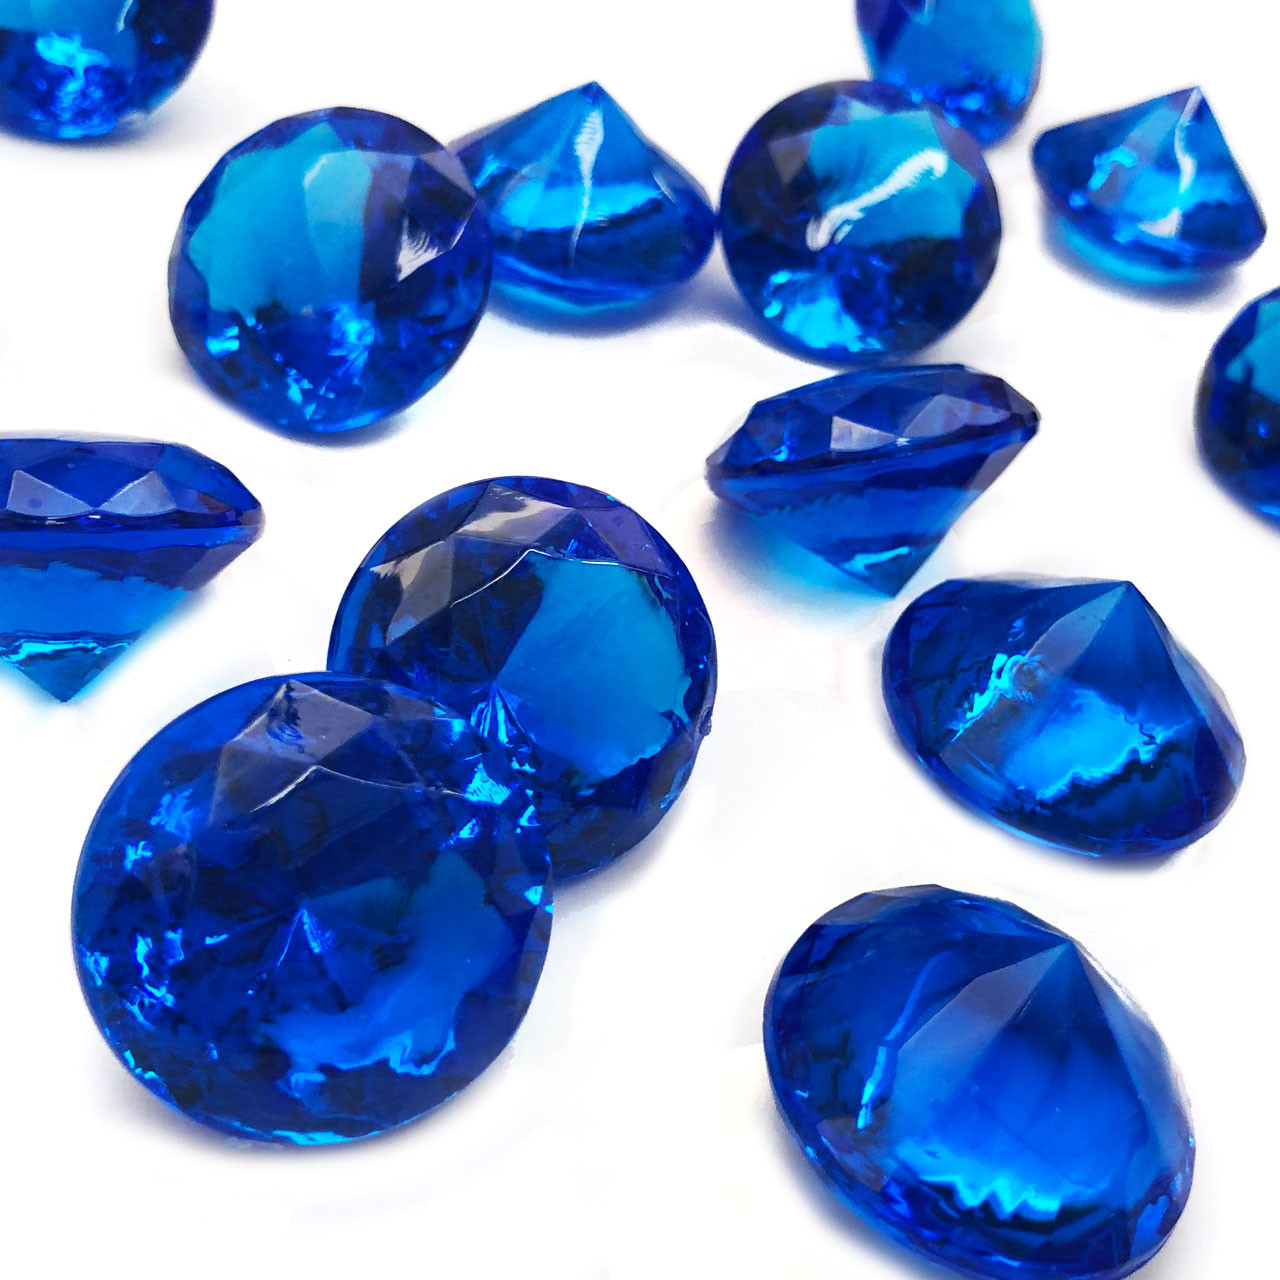 40 Blue Acrylic Crystal Diamonds Large One Inch Jewels Table Centerpiece Wedding Decorations Bridal Shower Party Confetti Vase Filler